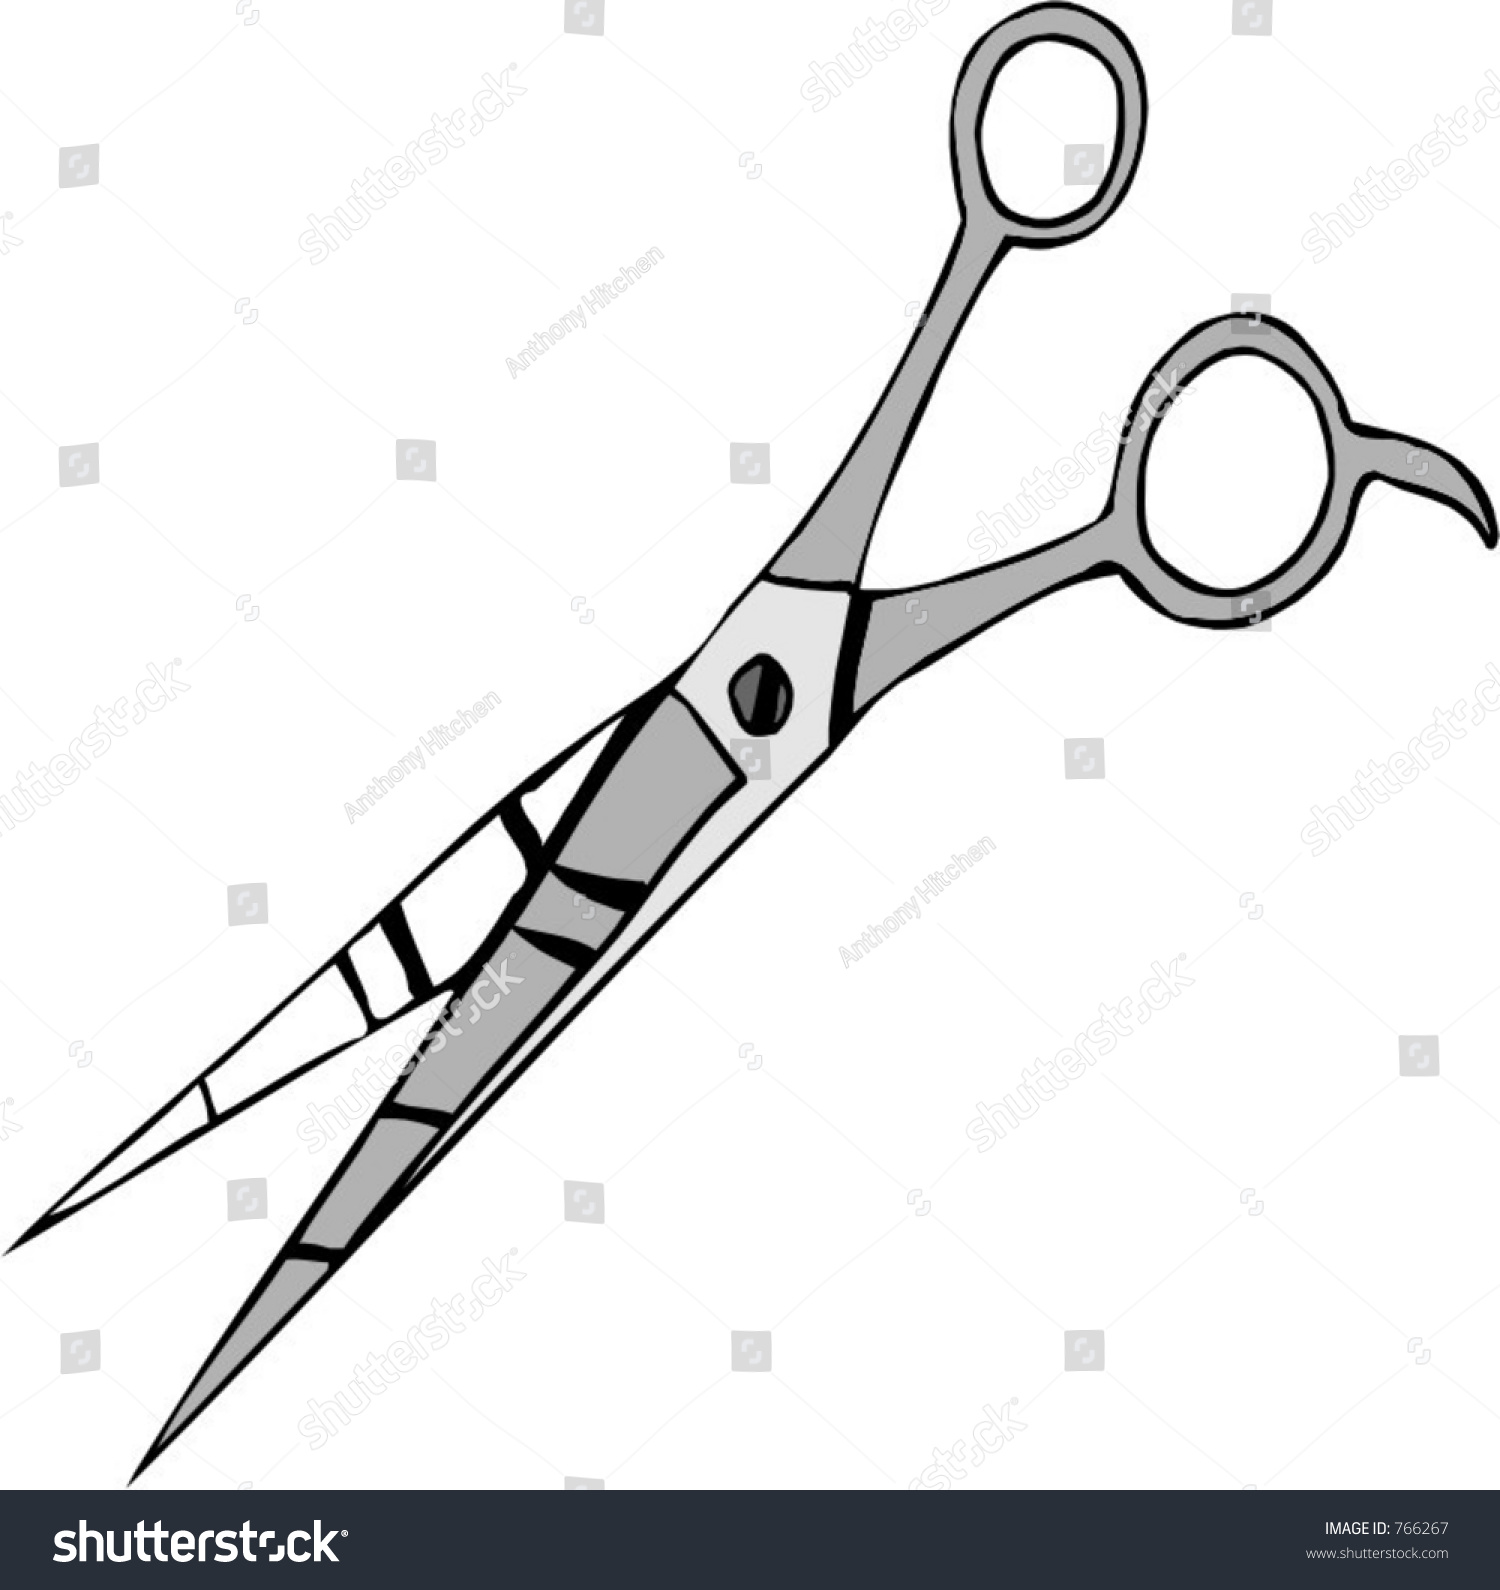 Hair Scissors Stock Vector Illustration 766267 : Shutterstock